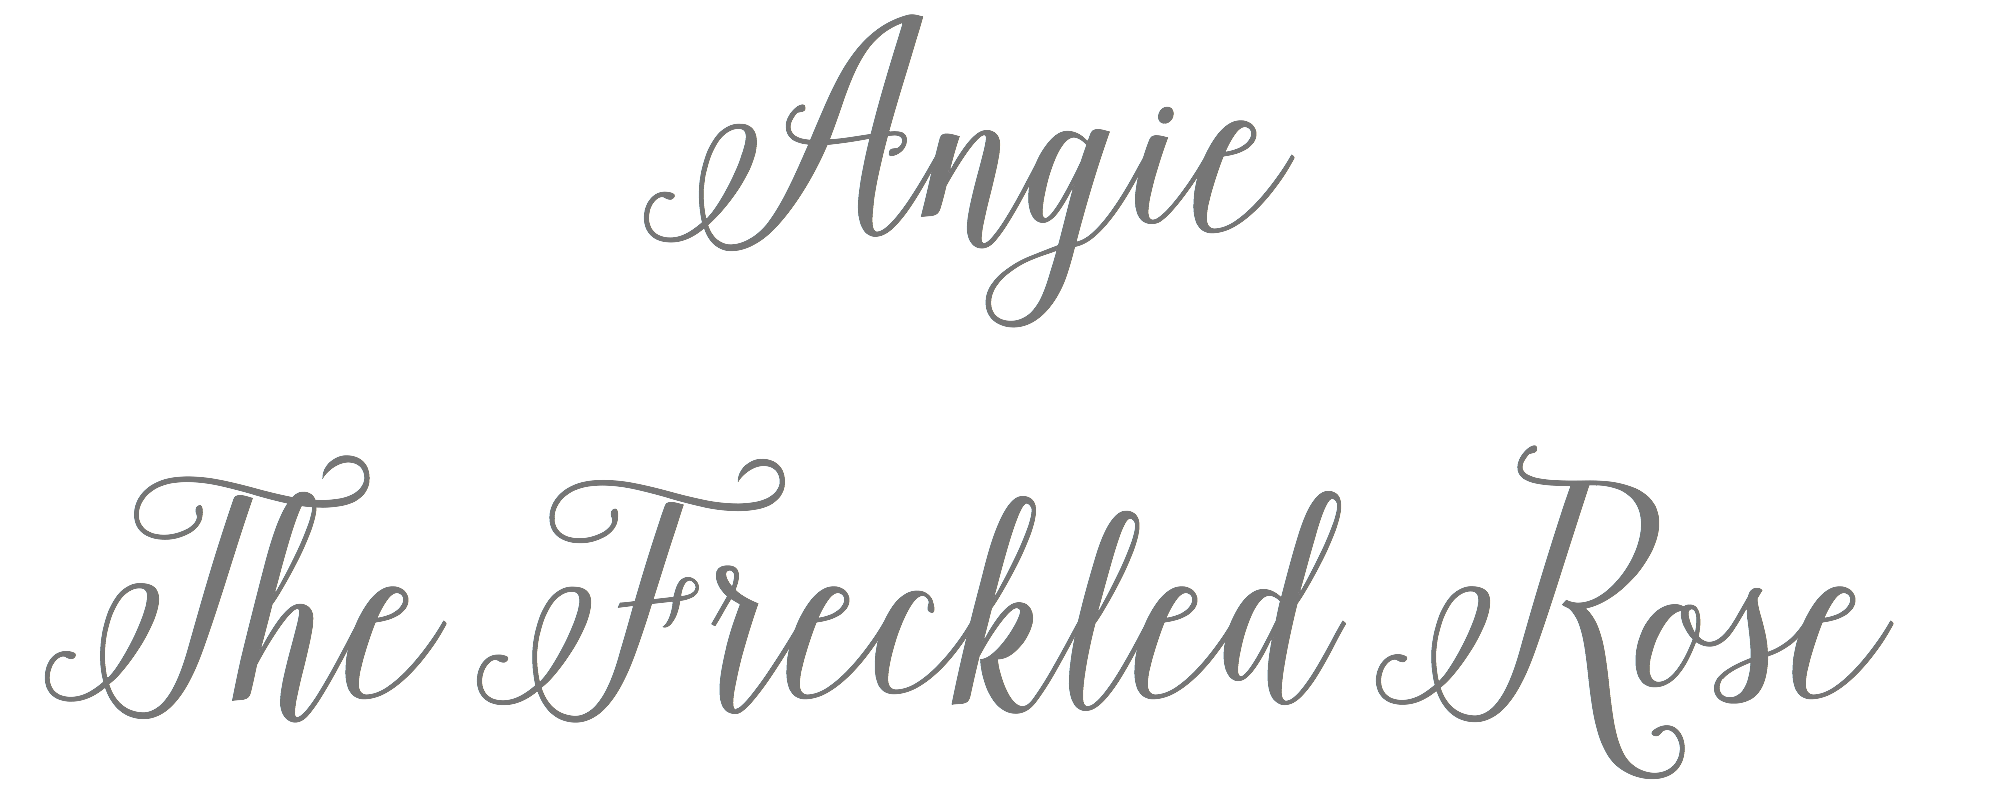 Angie The Freckled Rose Logo | angiethefreckledrose.com